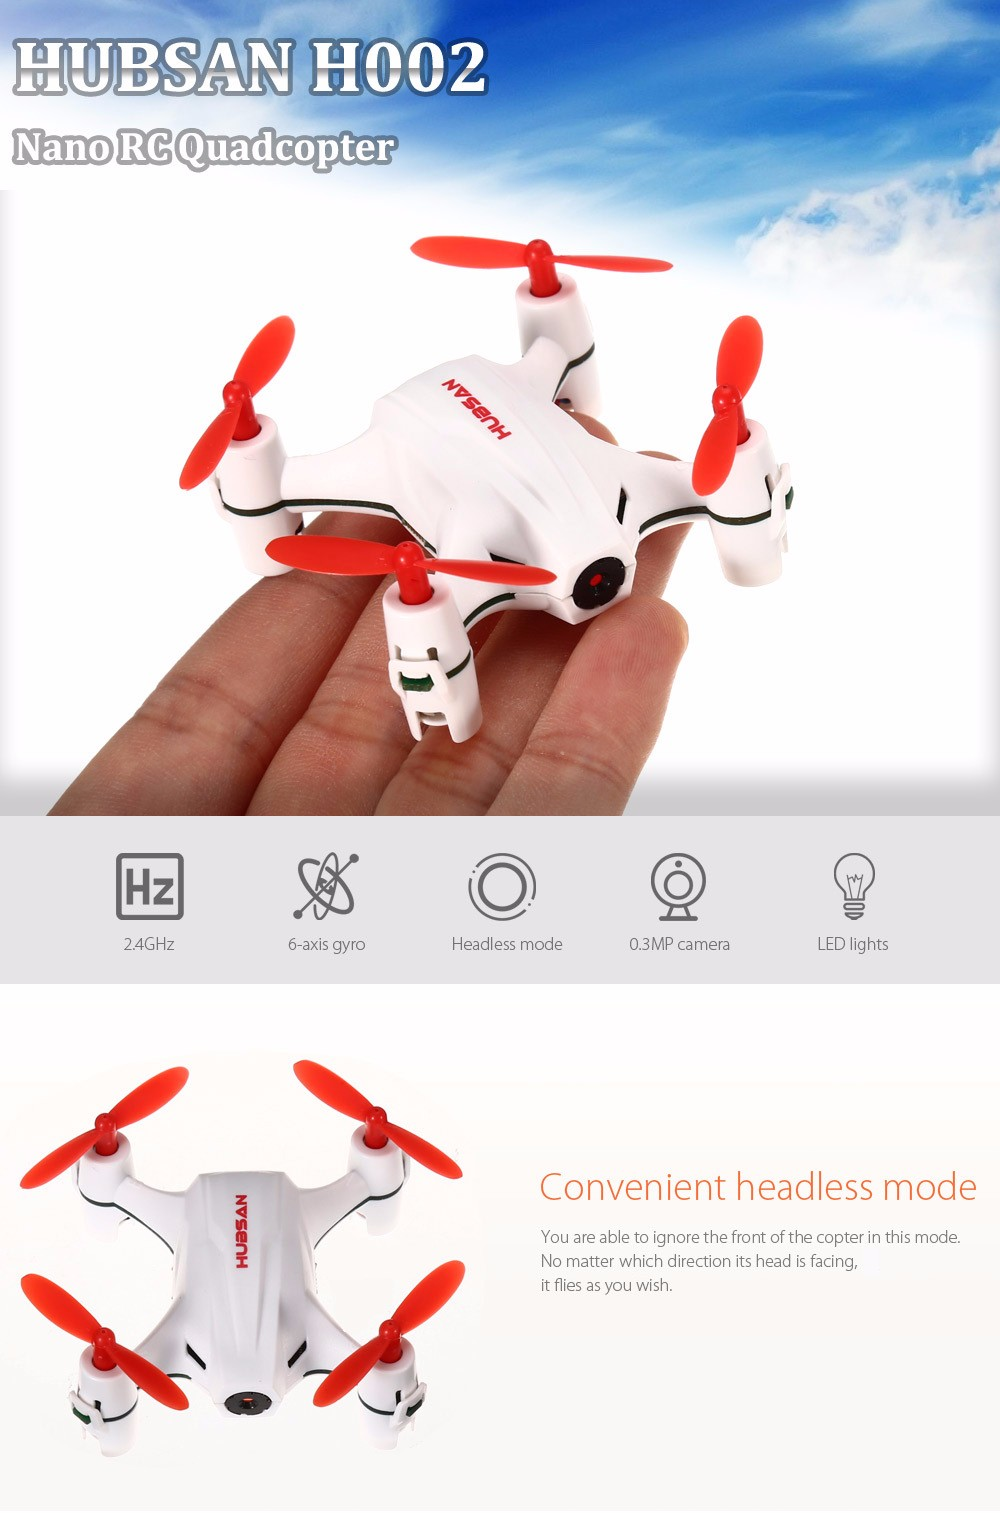 HUBSAN H002 0.3MP 2.4GHz 4CH 6 Axis Gyro Nano Brushed RC Quadcopter with Headless Mode